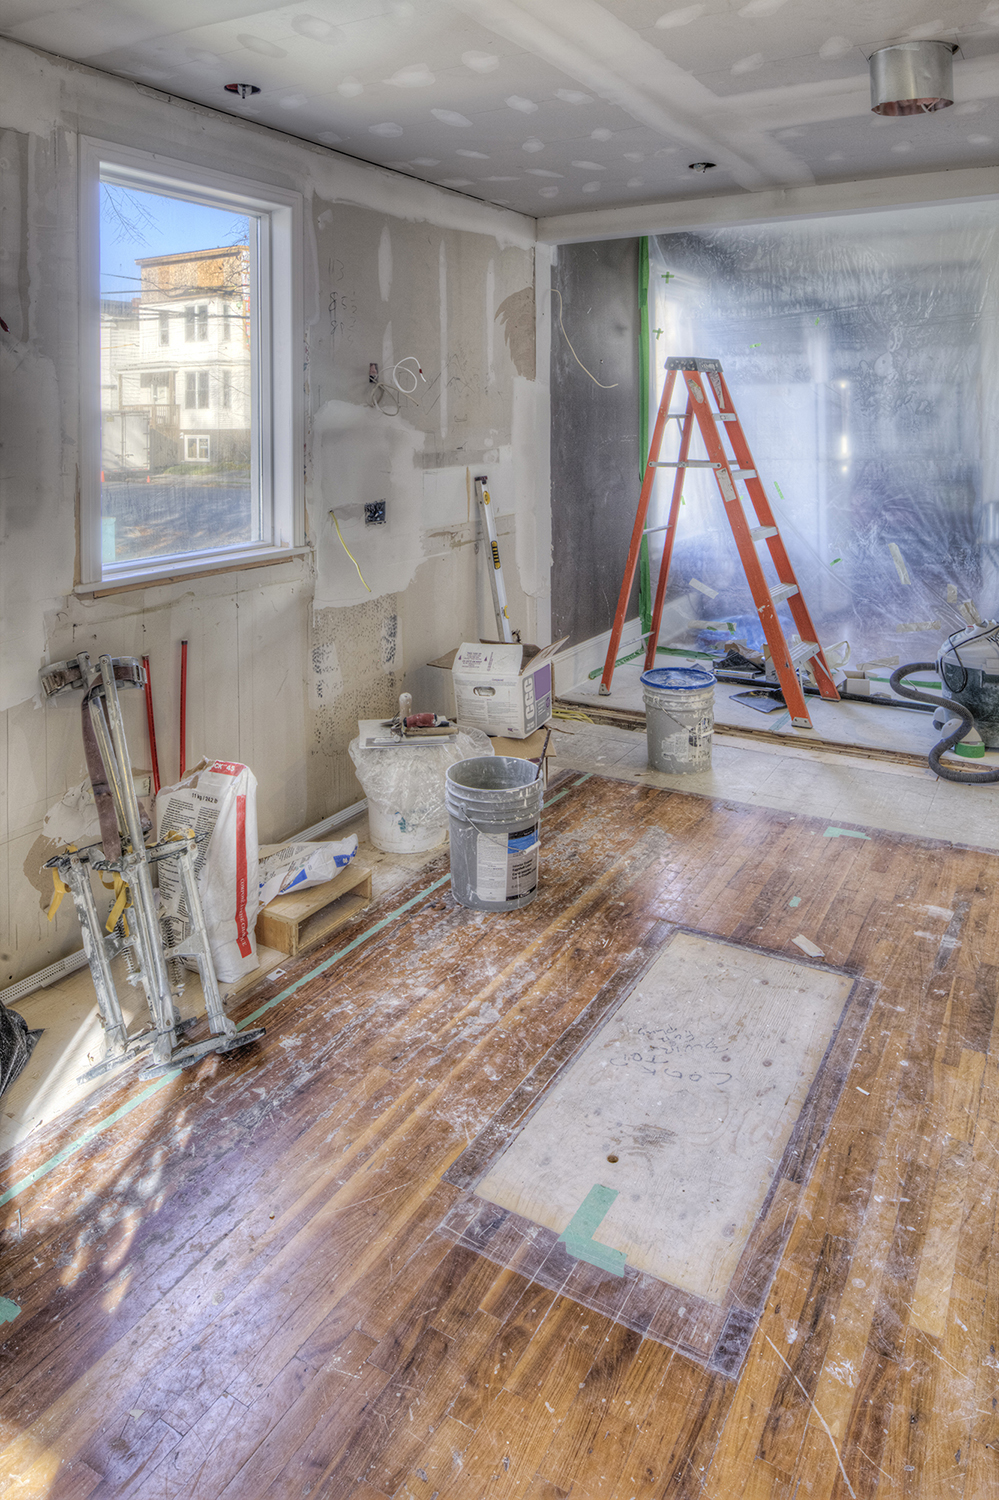 8 Things to Know Before You Renovate Your House